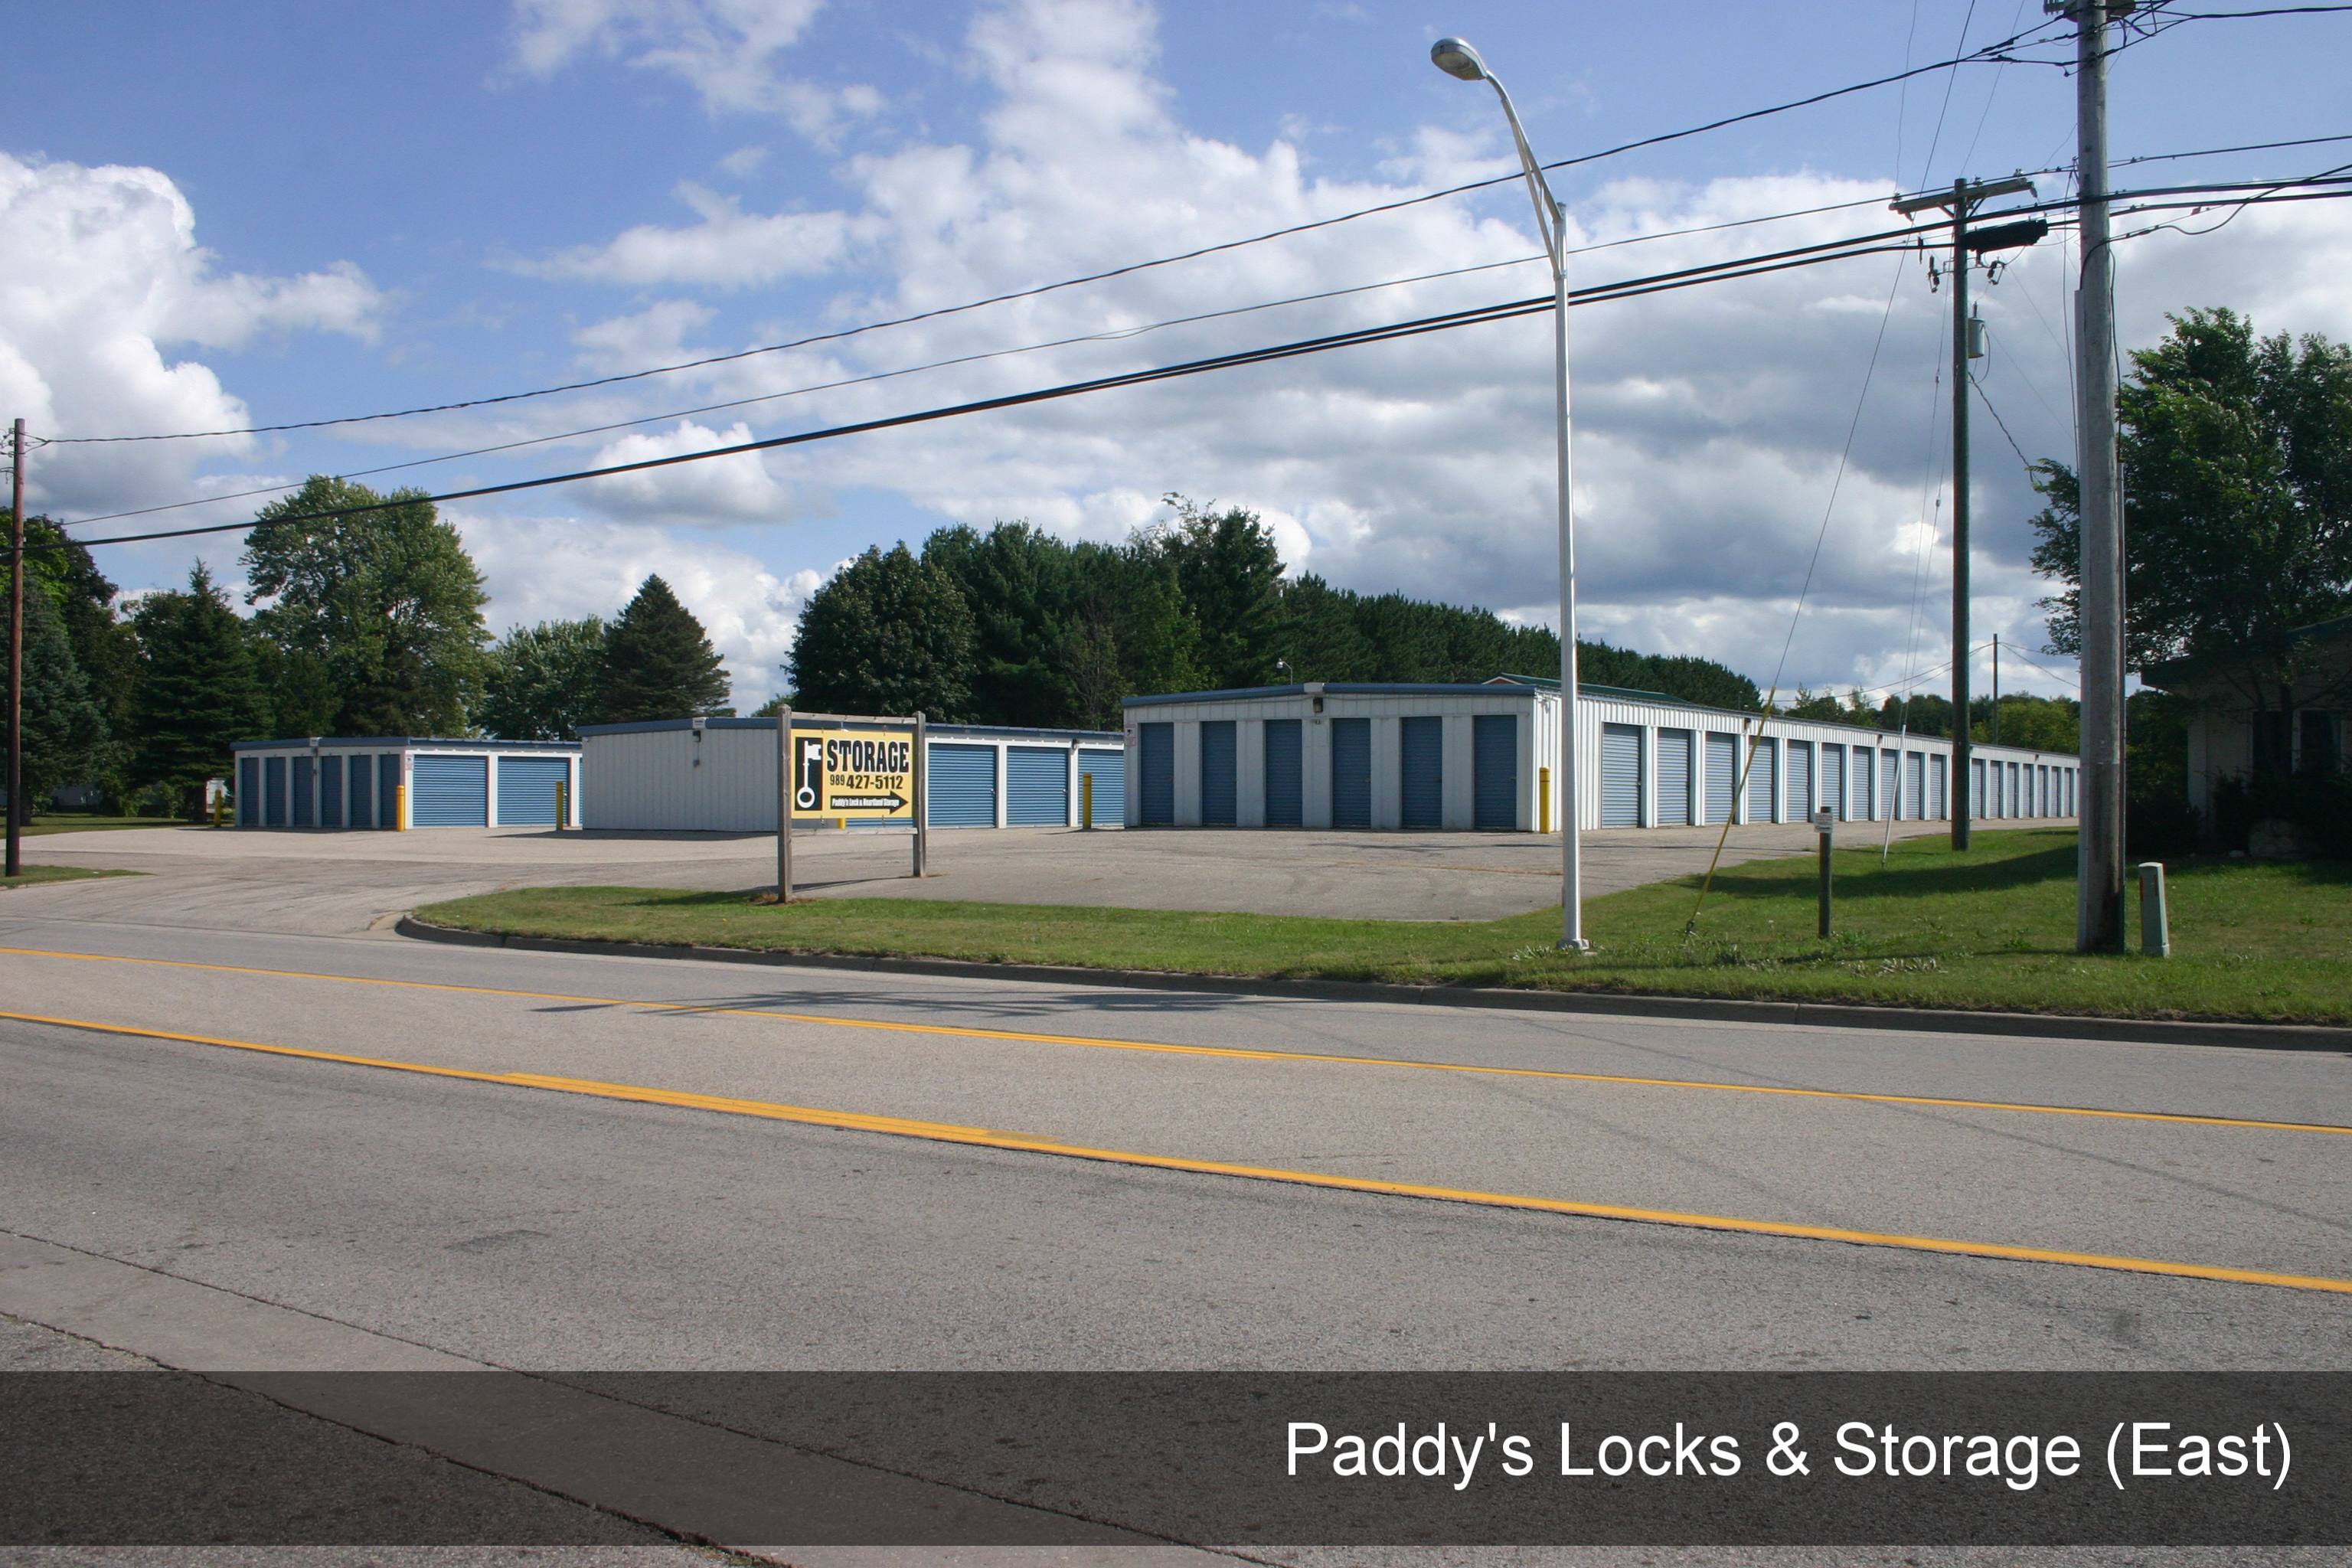 Paddy's Locks & Storage (East), Edmore MI